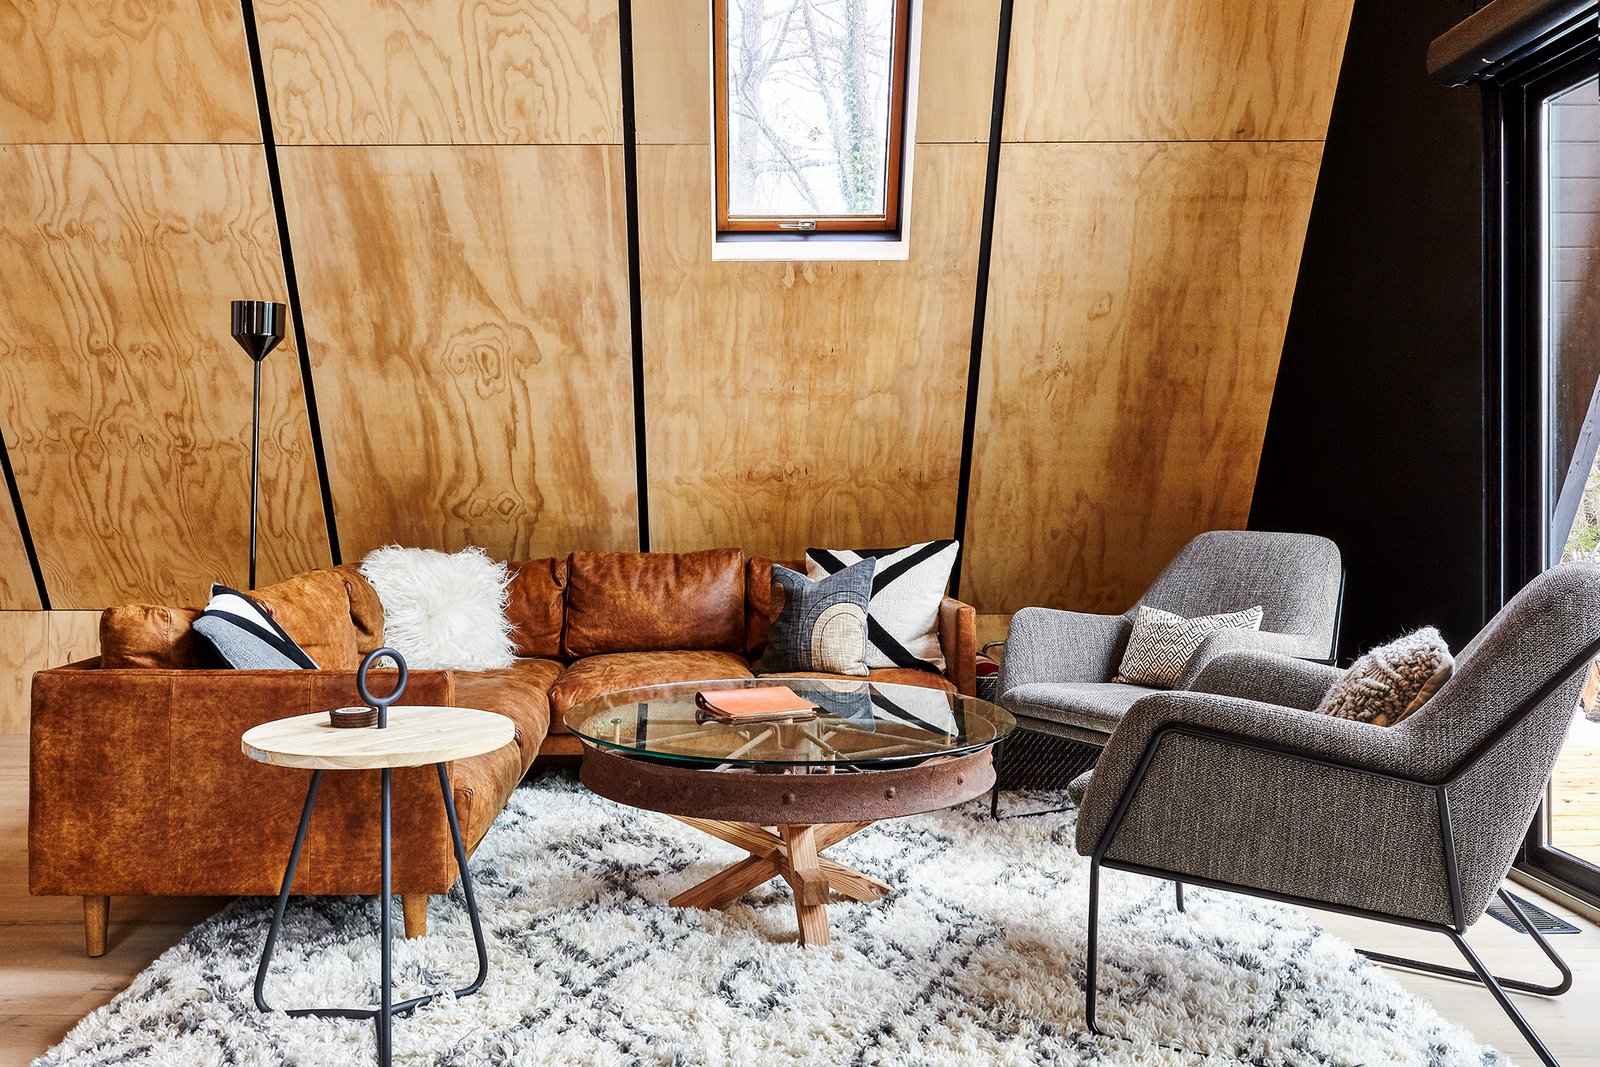 Living room with furnishings by Article & custom wagon wheel table by Ovuud